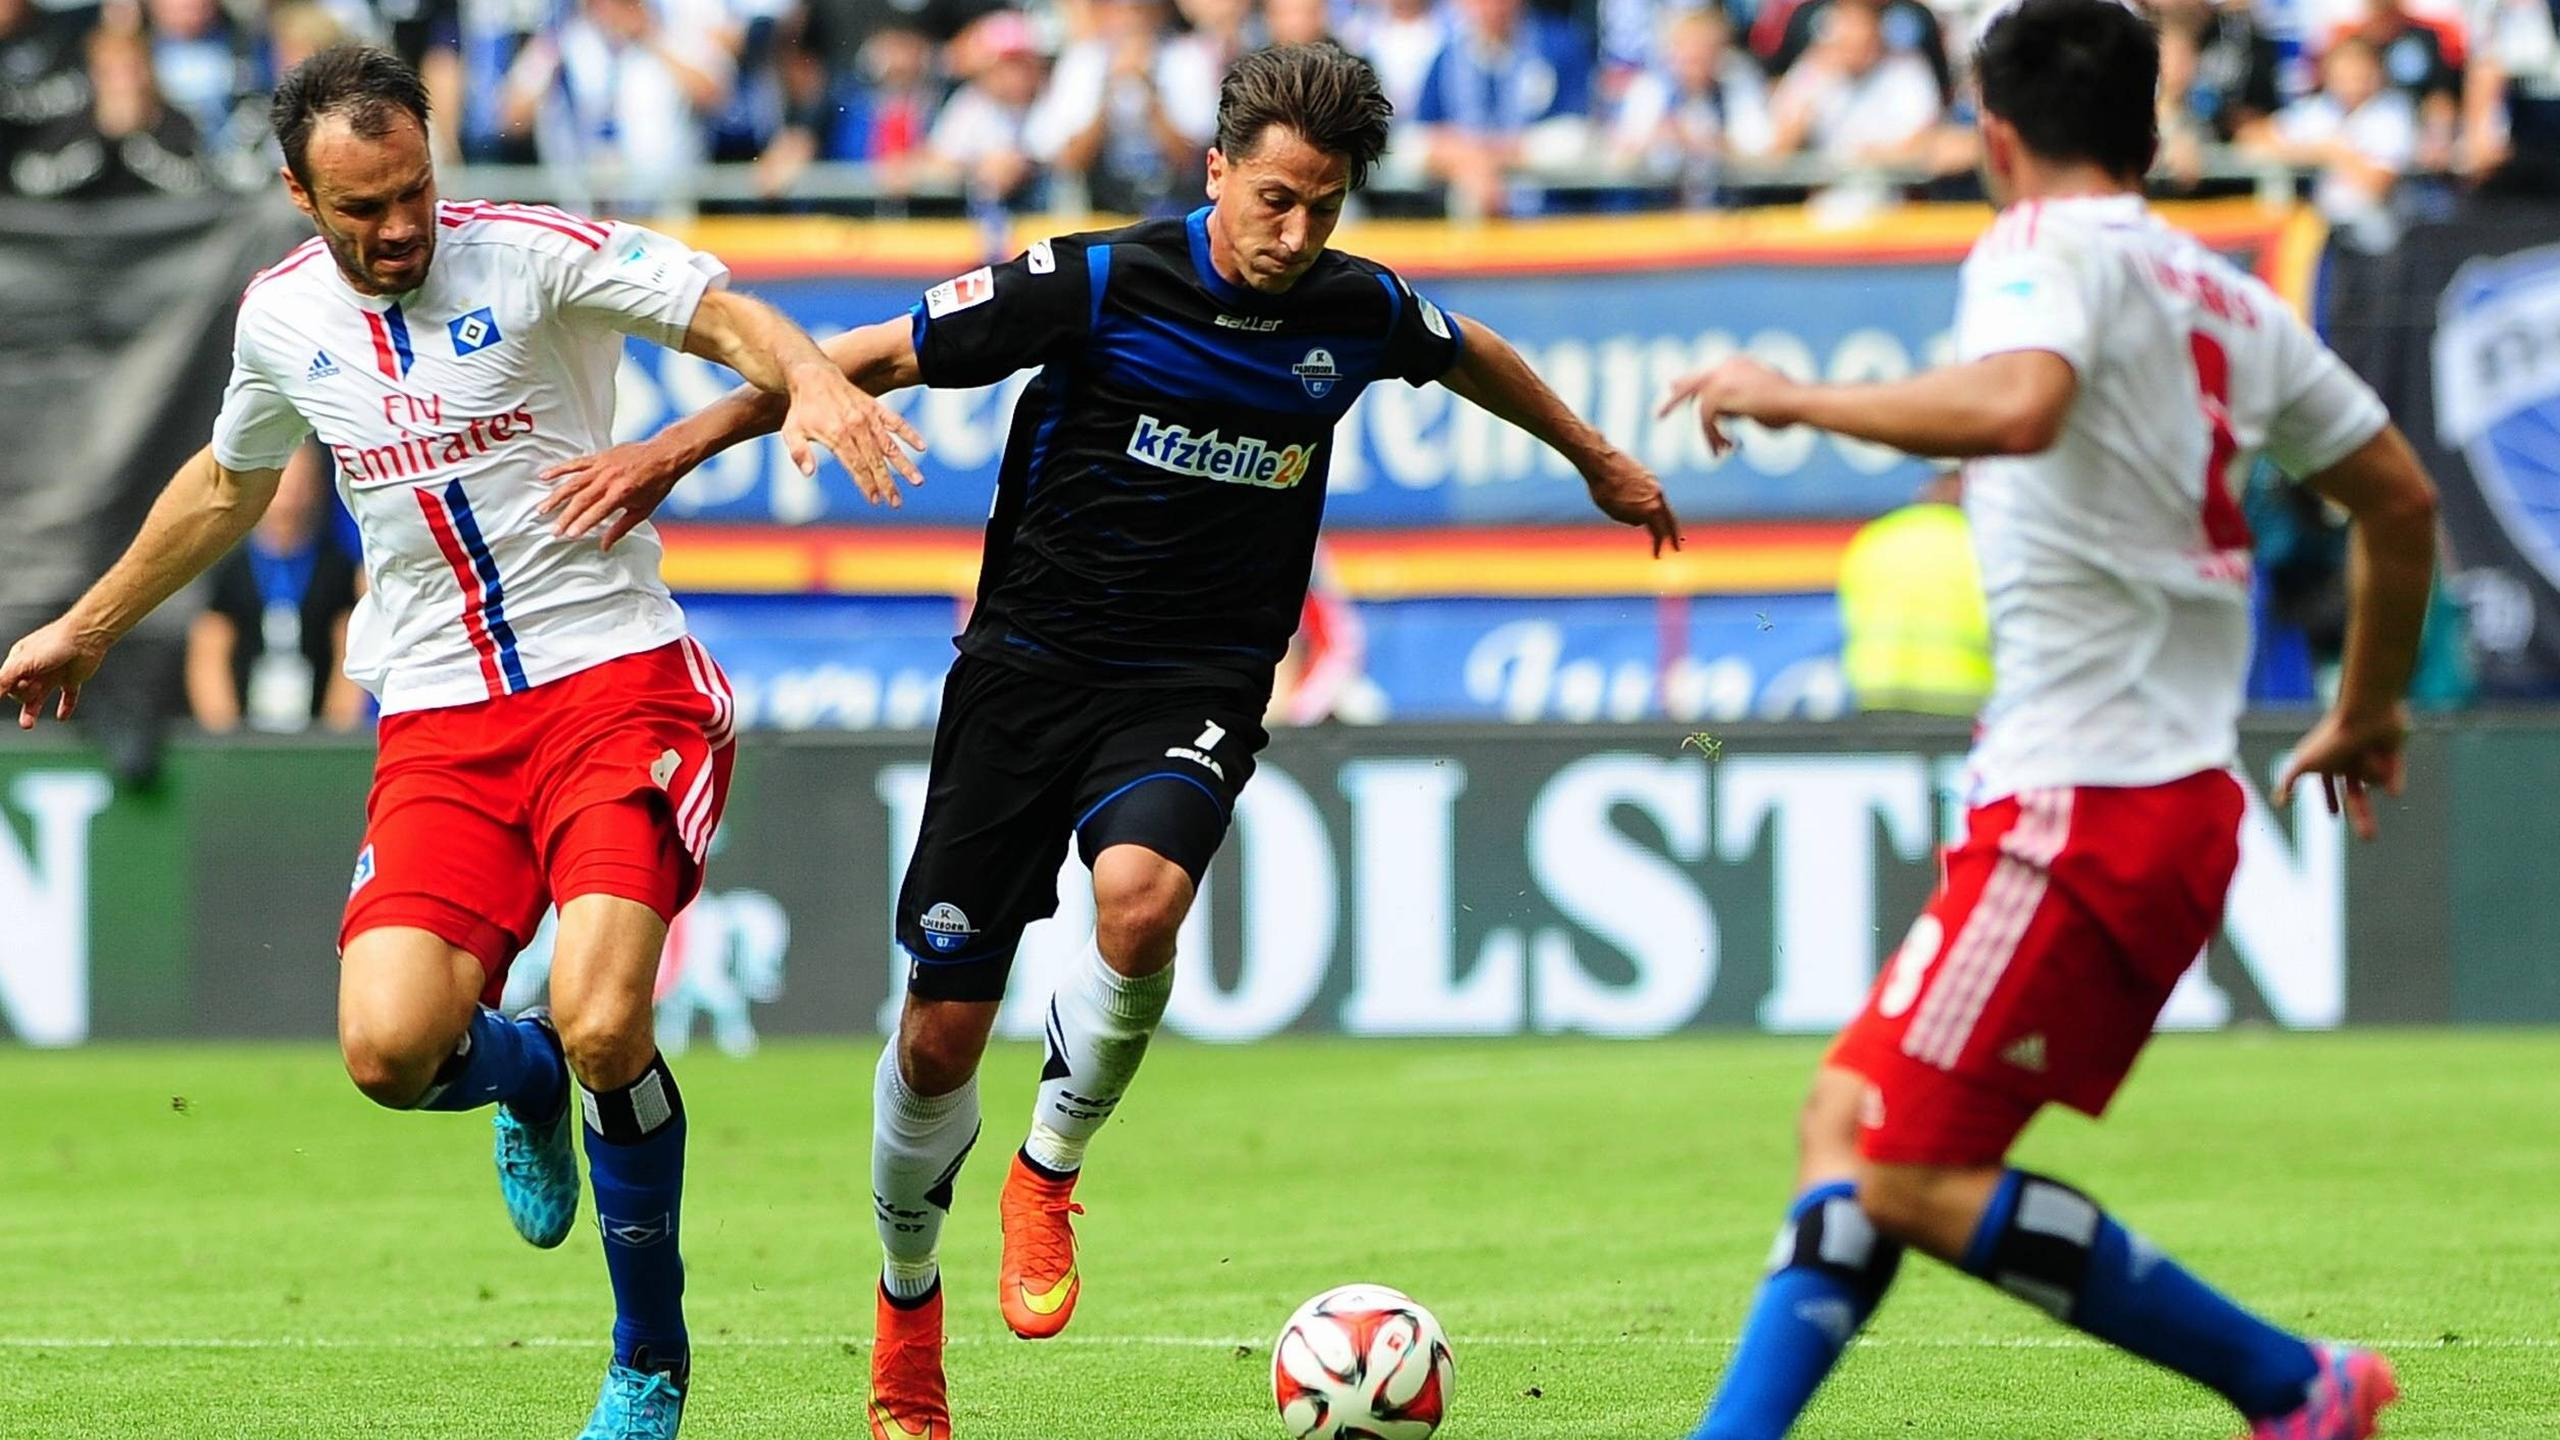 Video: Hamburger SV vs Paderborn